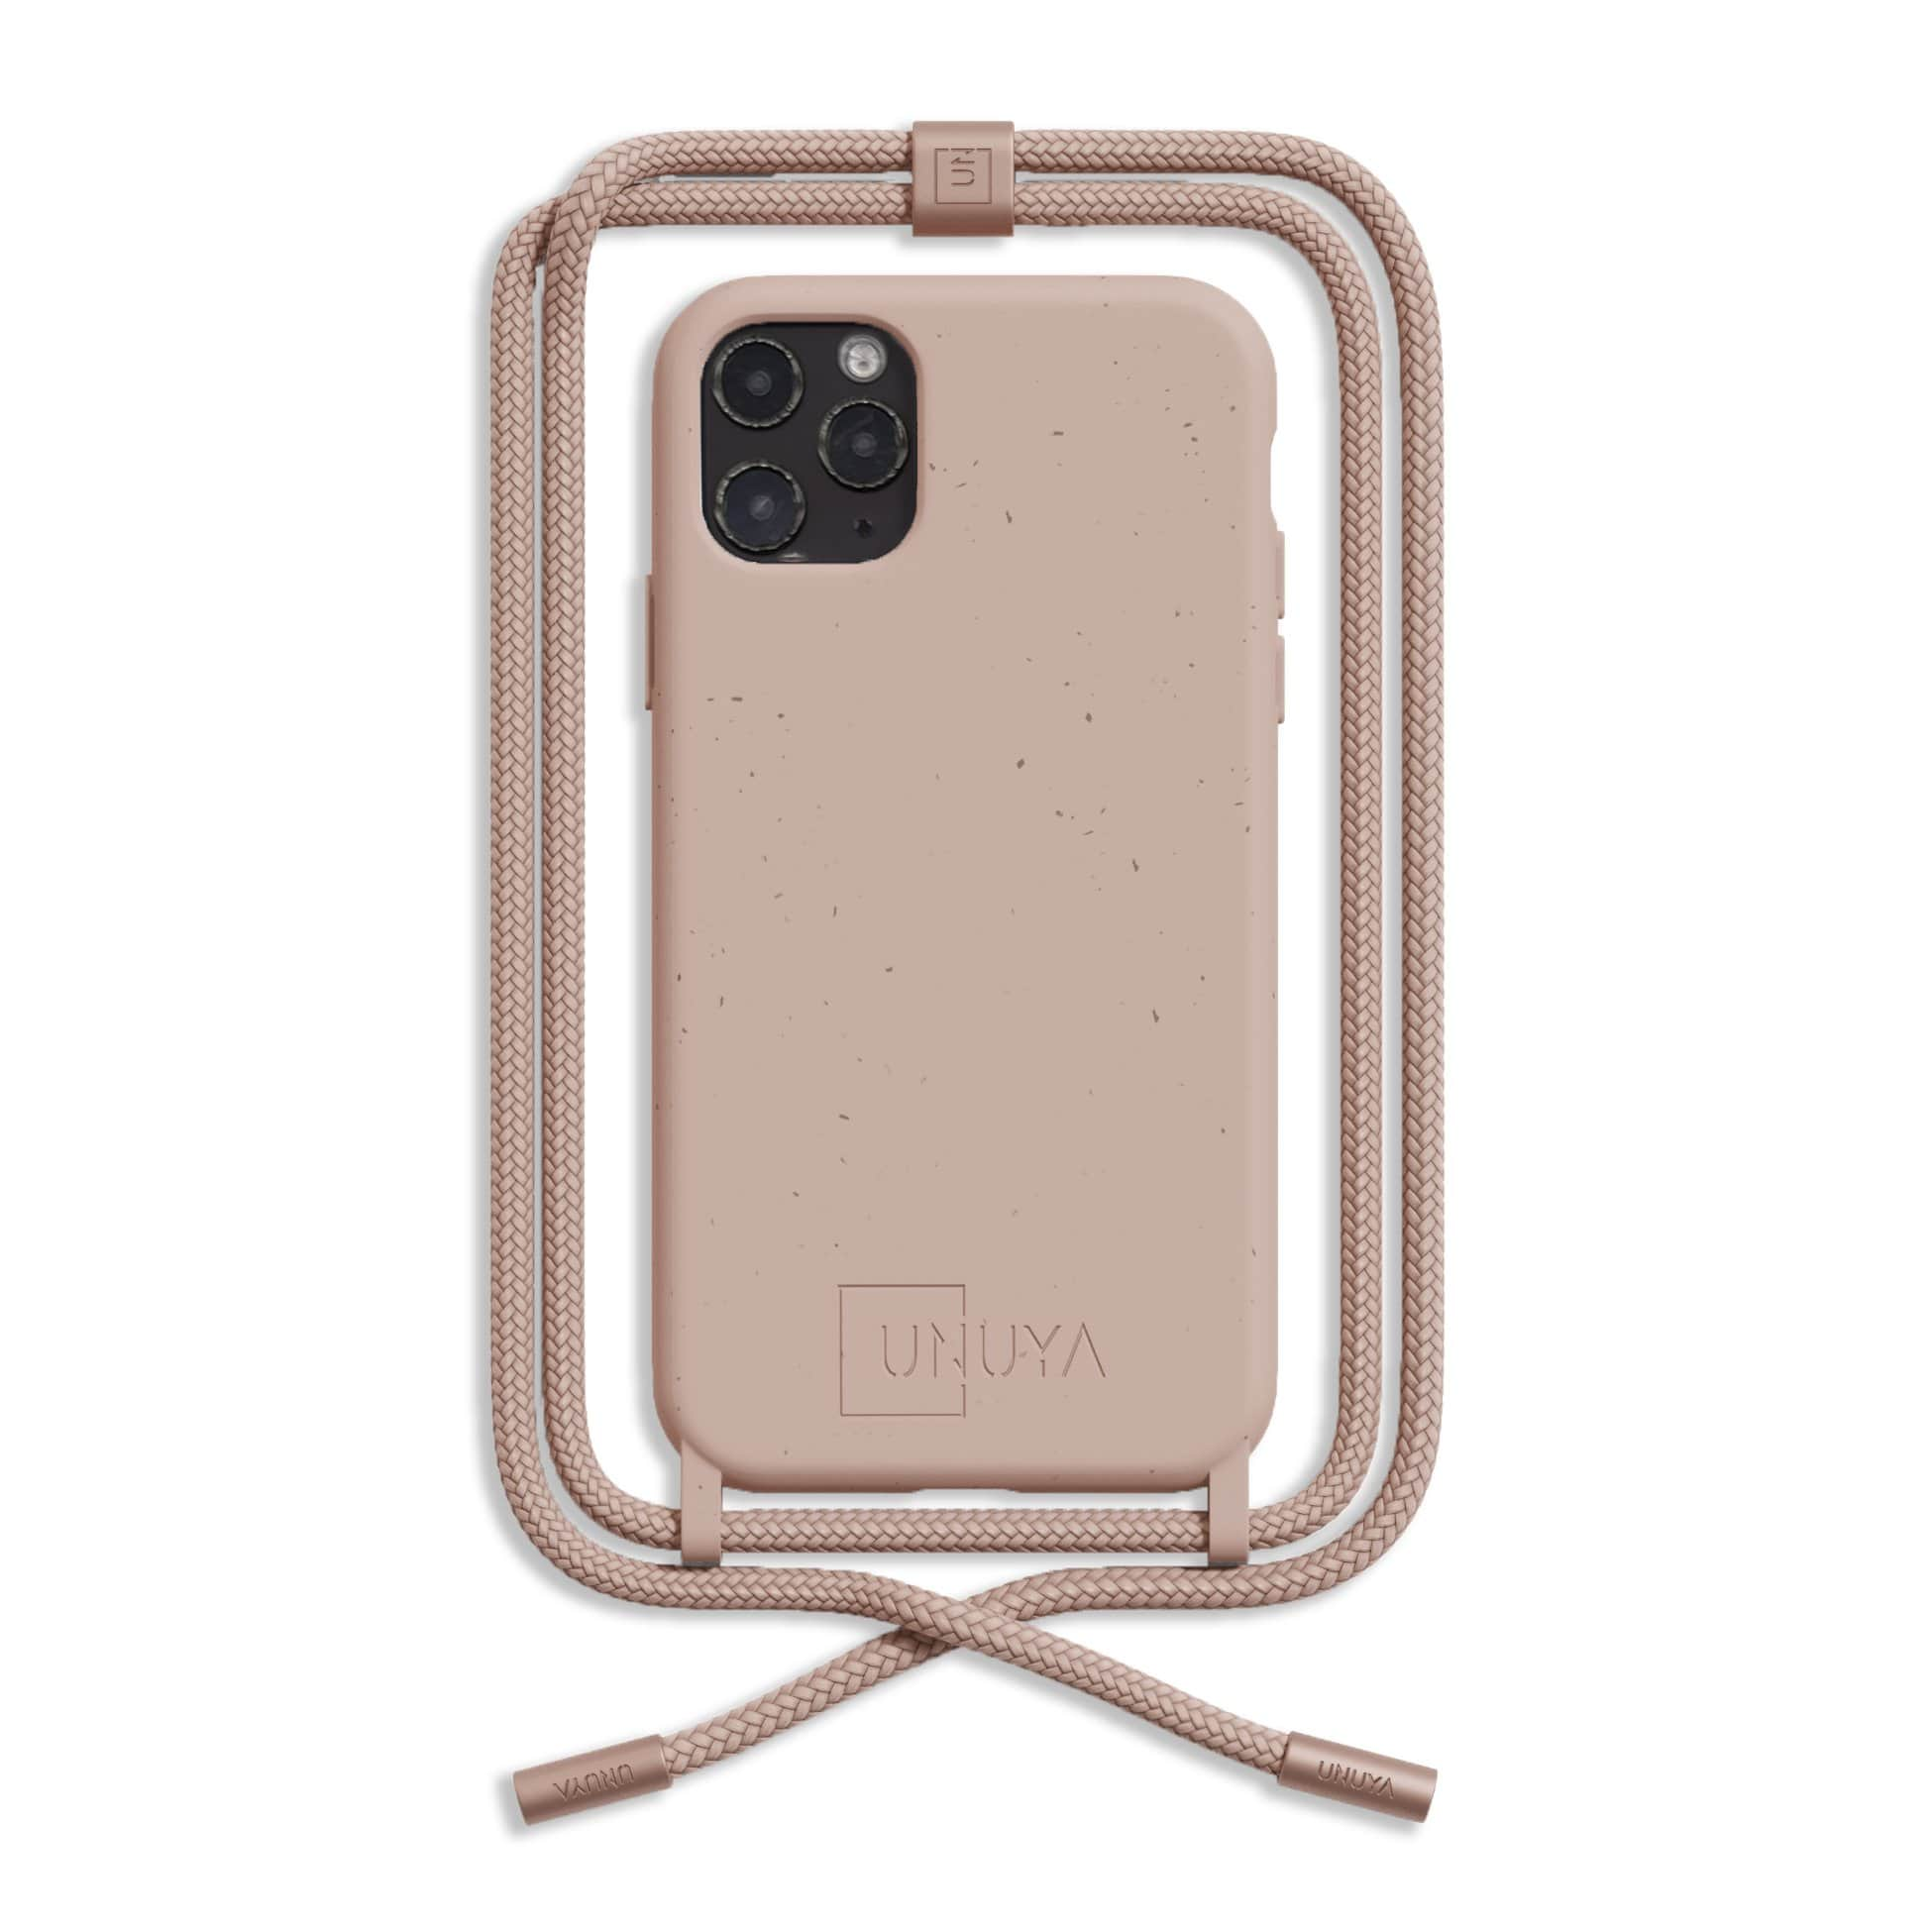 Biodegradable iPhone case - nude + rope